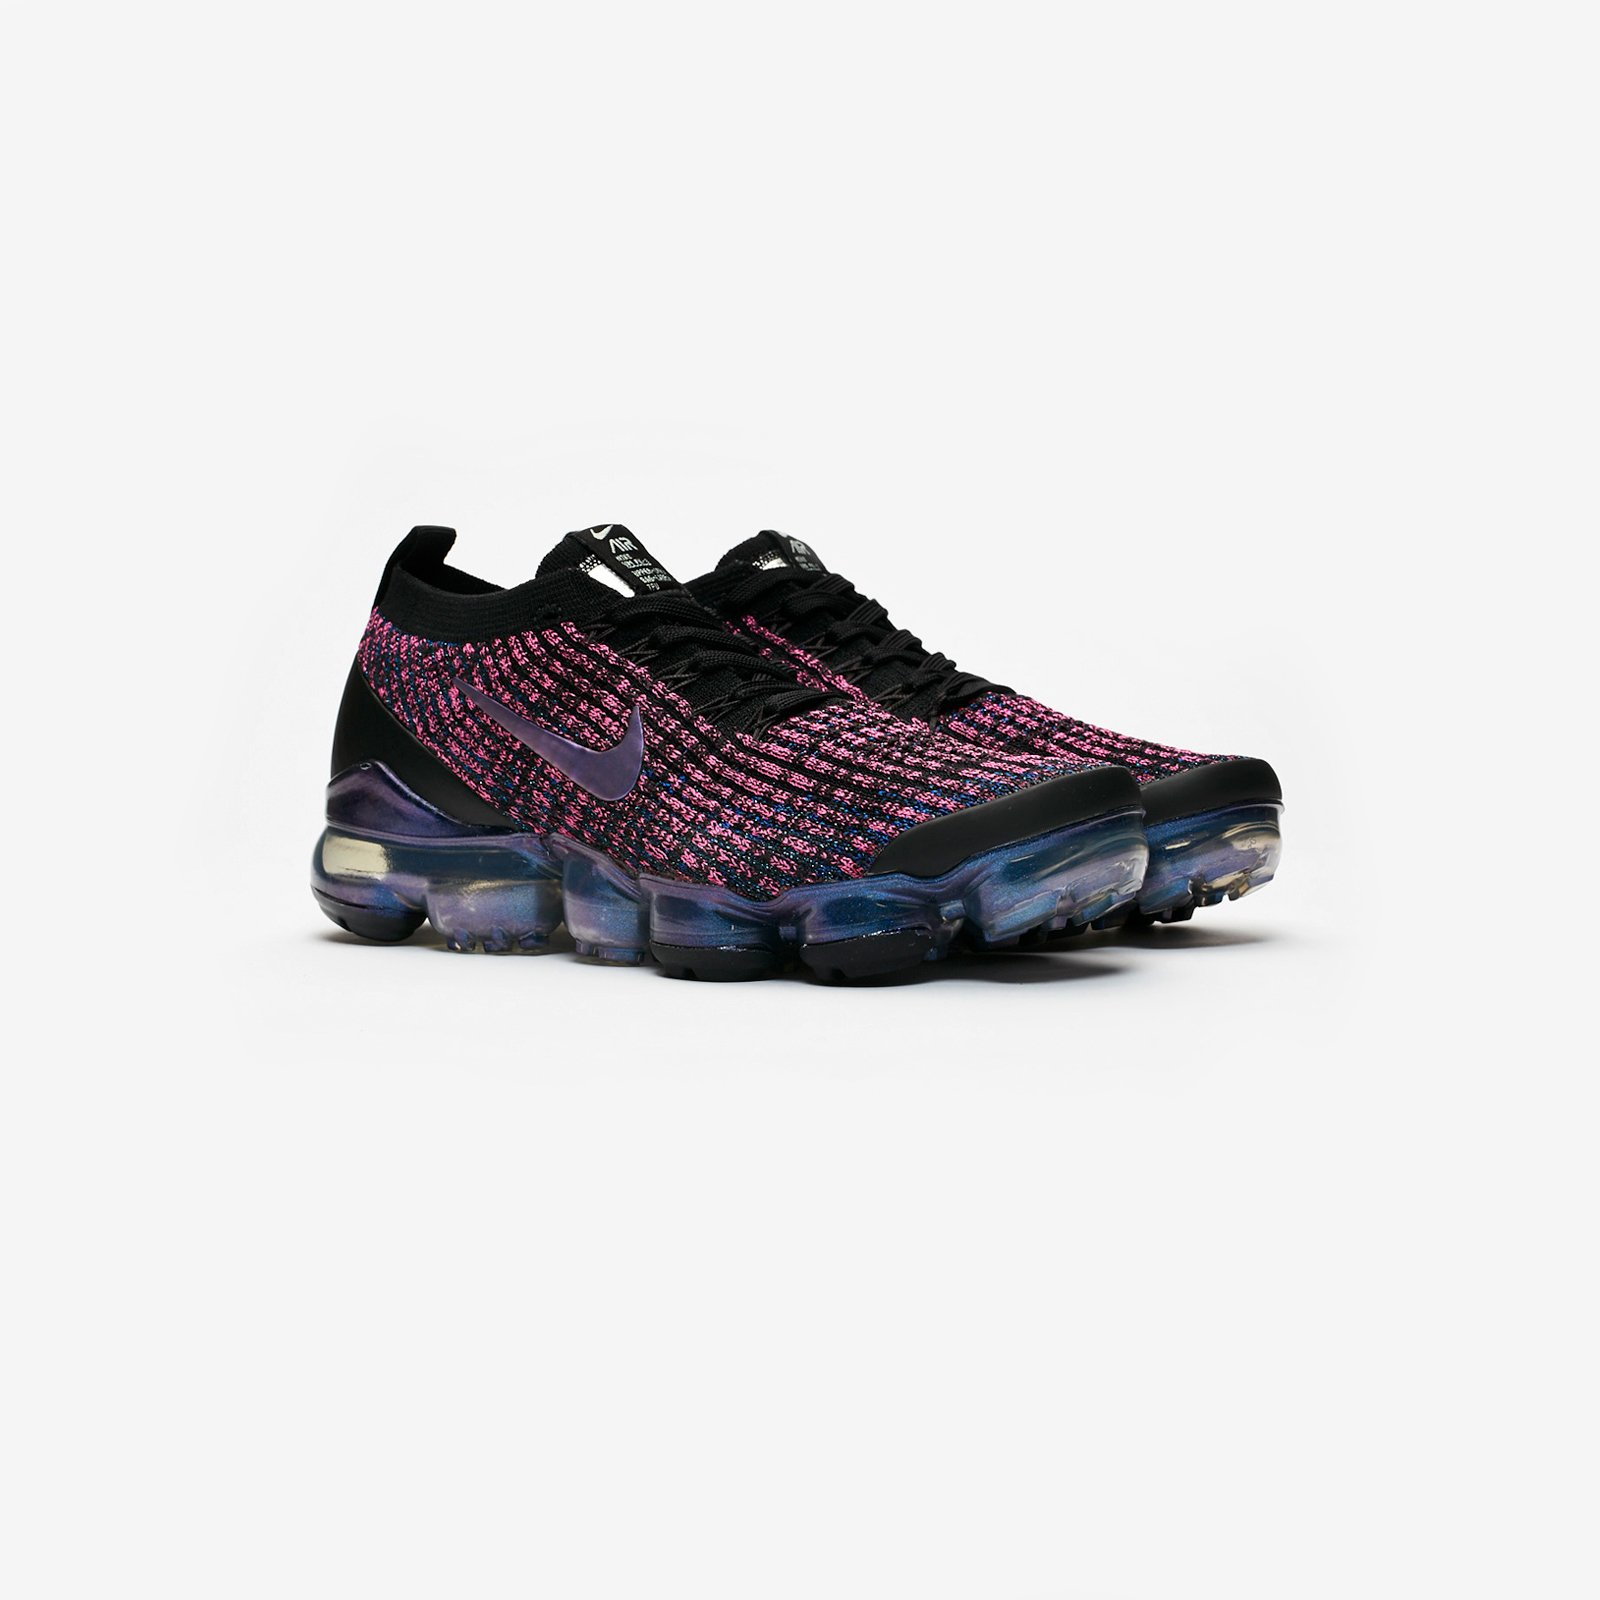 Nike Wmns Air Vapormax Flyknit 3 Black Purple Womens Running Shoes AJ6910-003